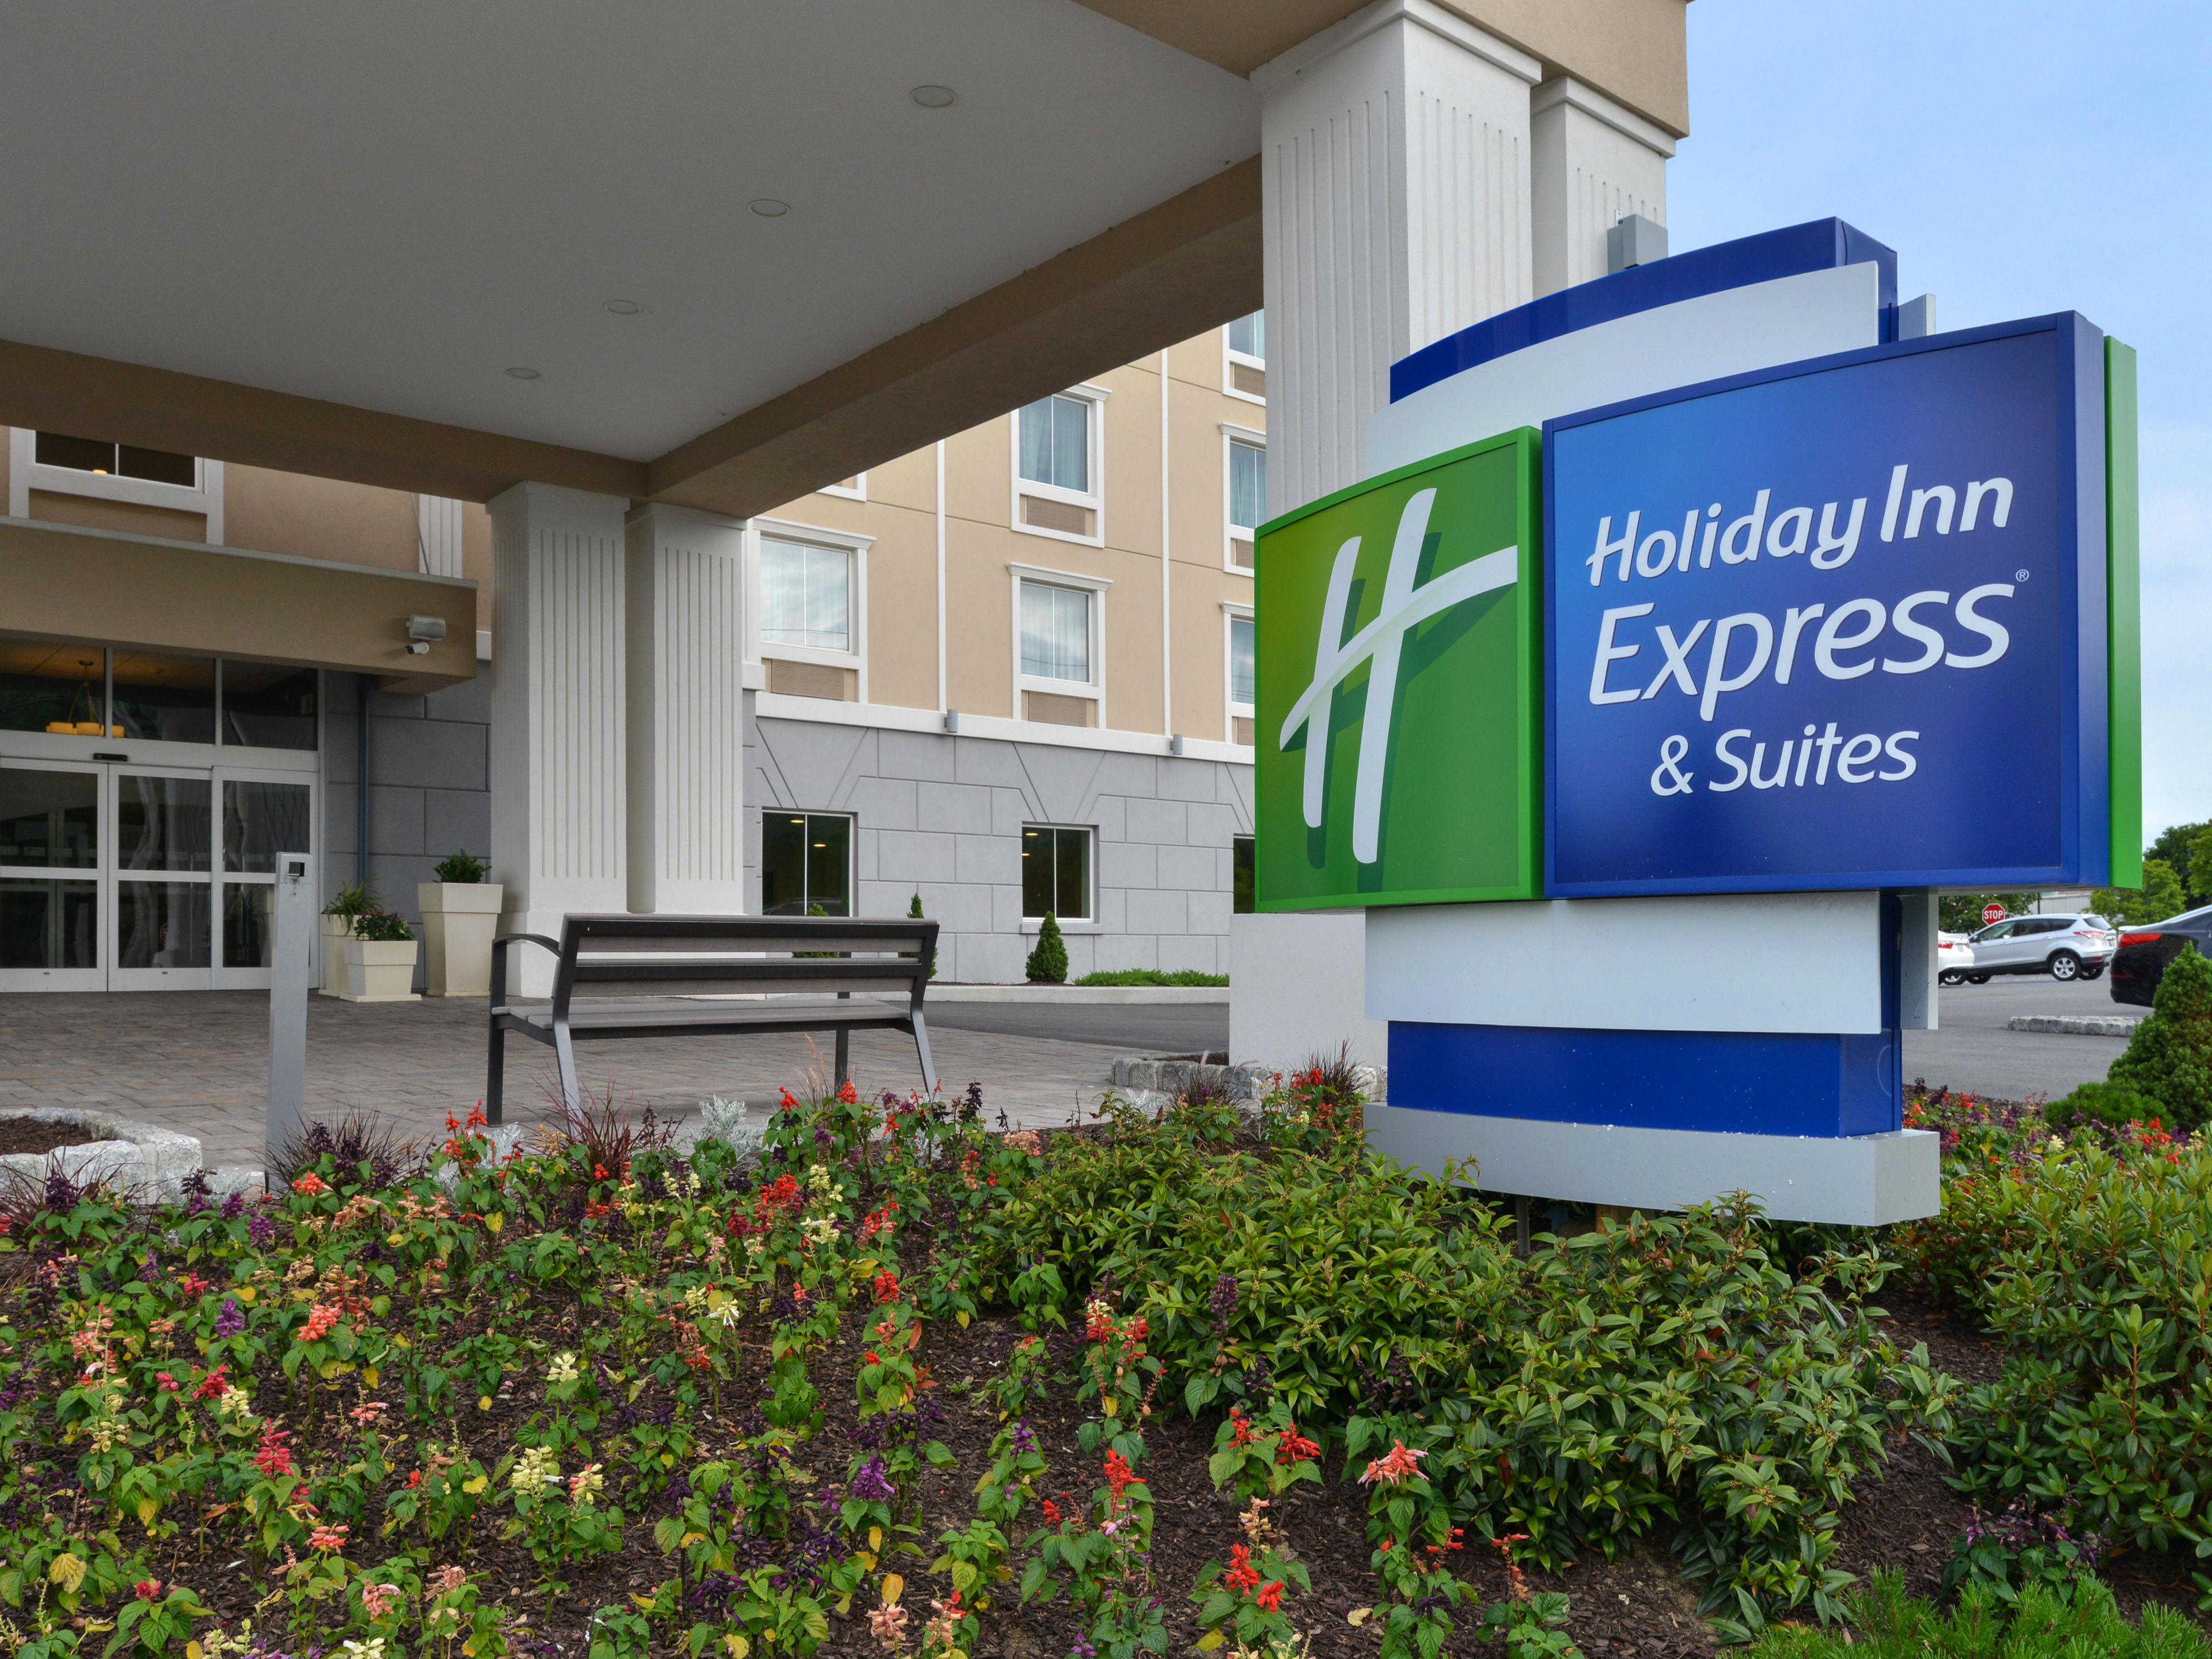 Holiday Inn Express Suites Kskill Lower Hudson Valley Hotel By Ihg